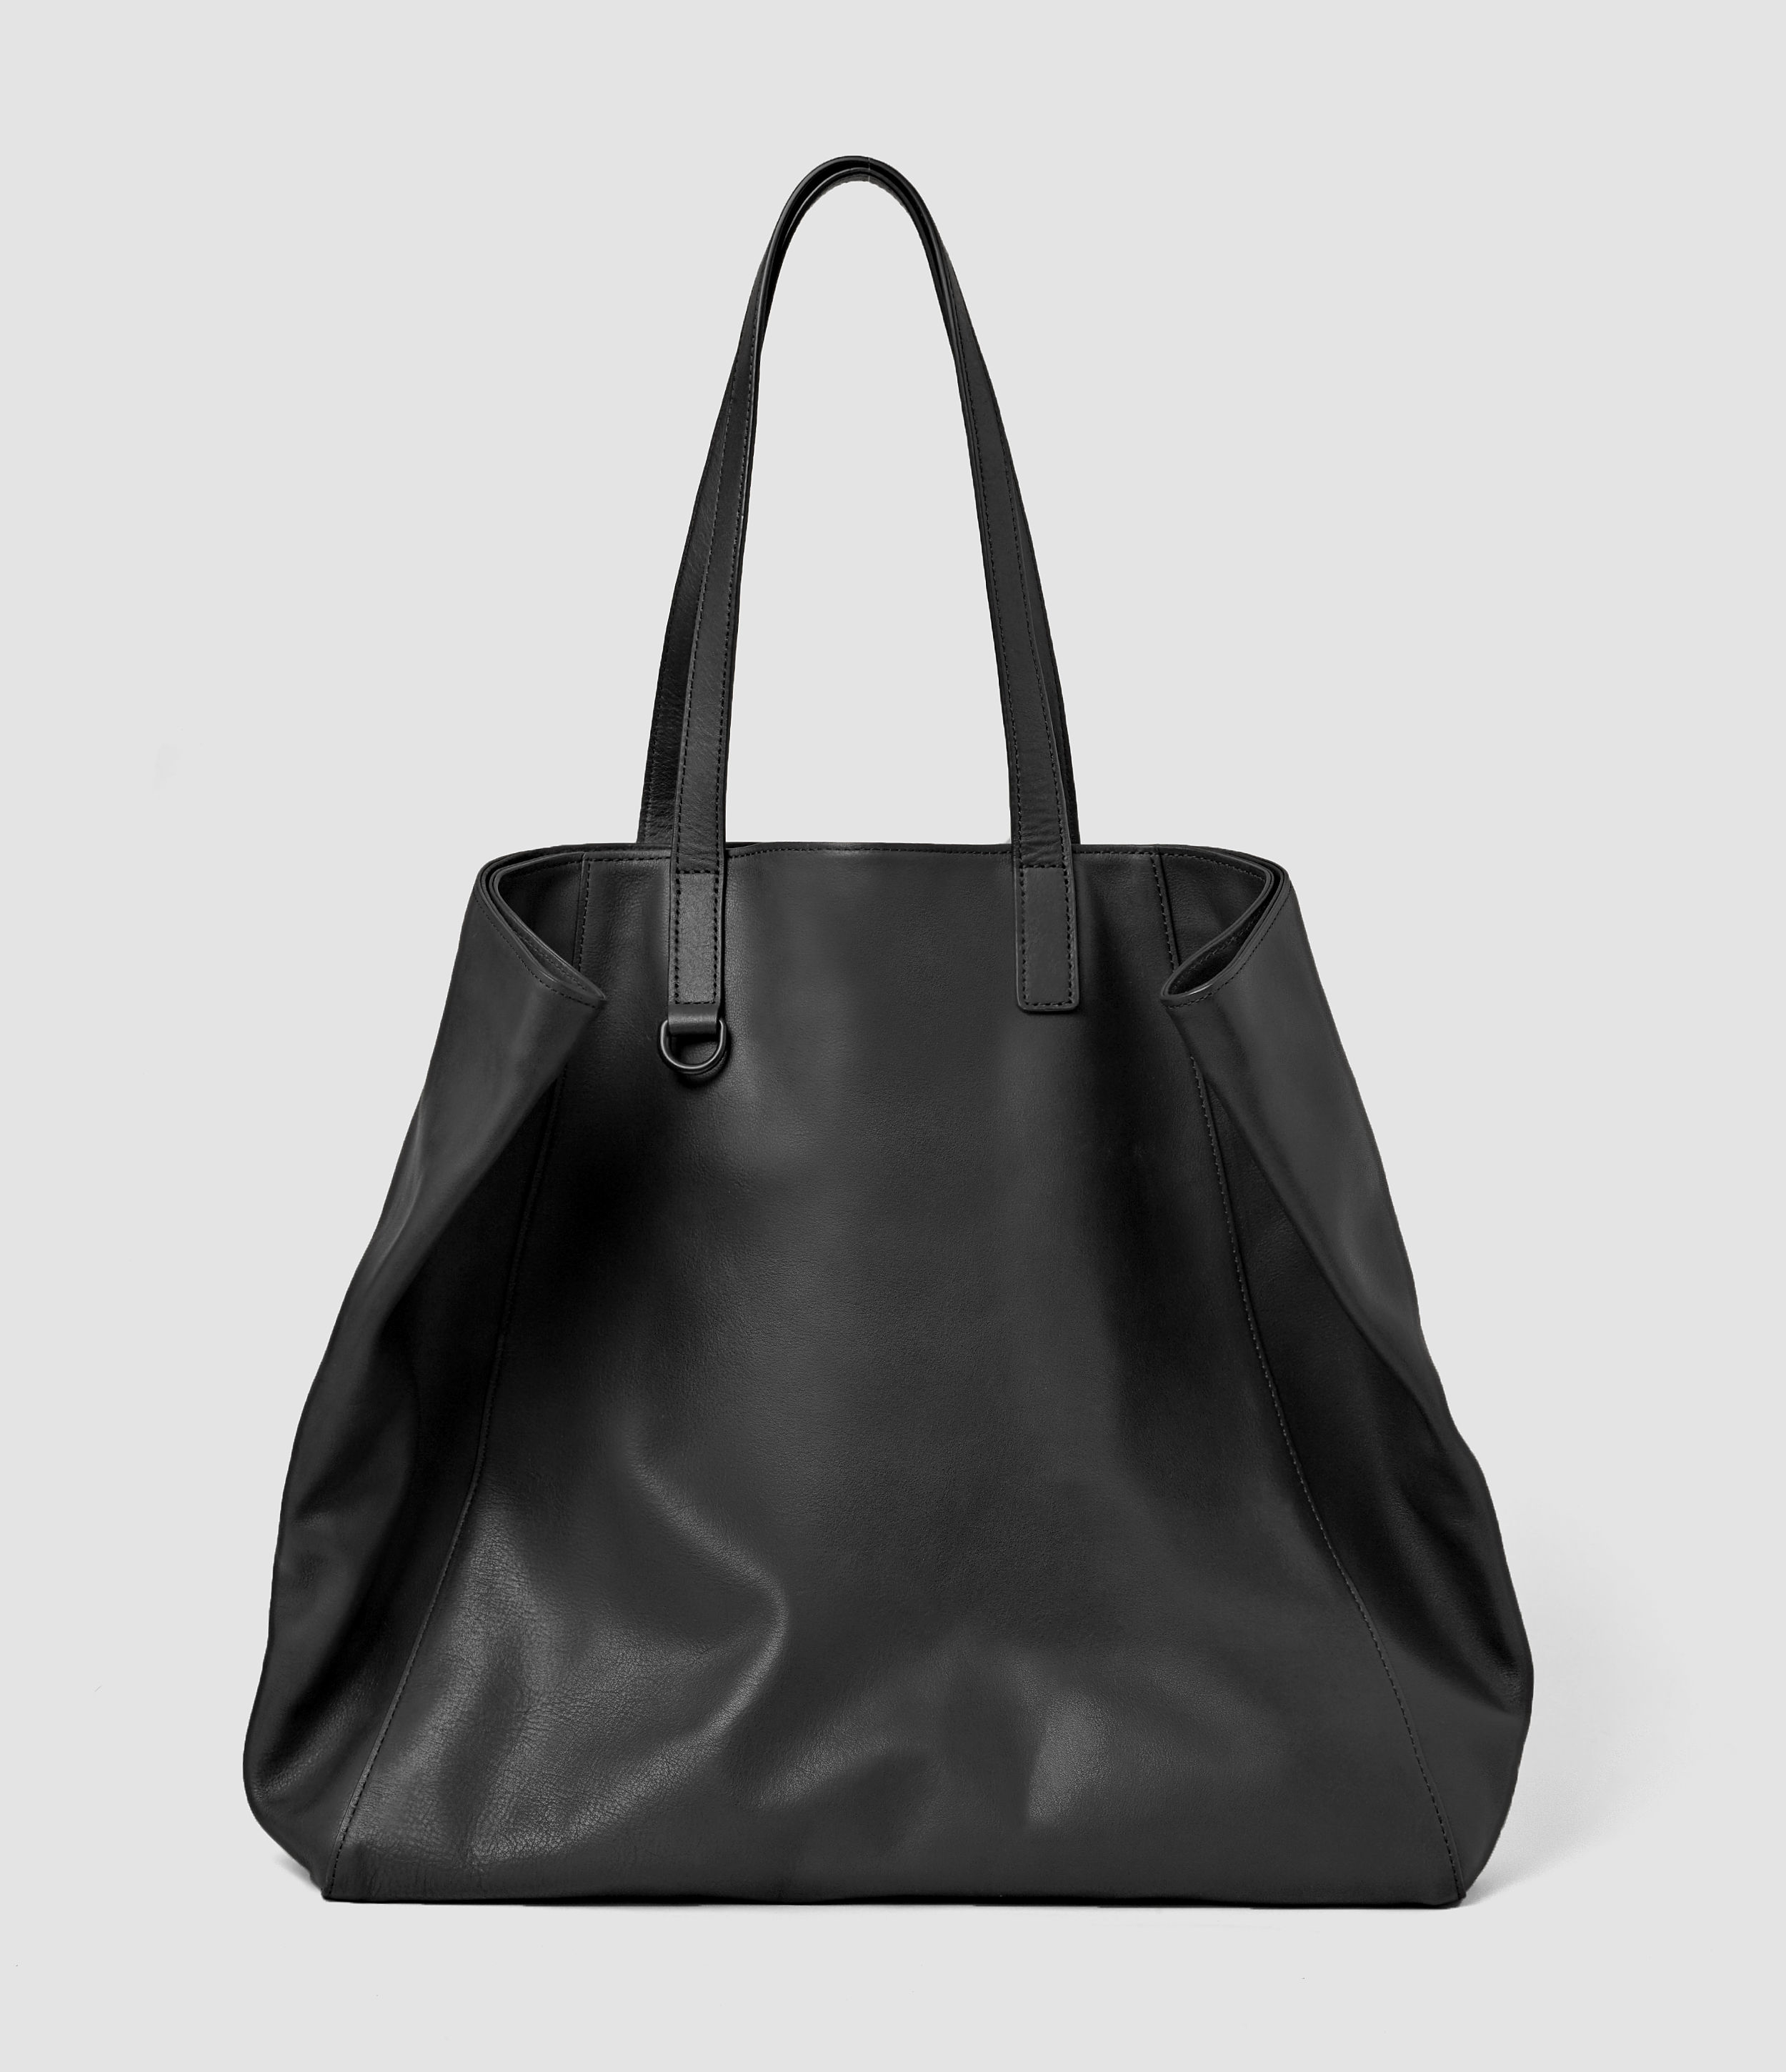 Allsaints Dray Leather Tote Bag Usa Usa In Washed Black